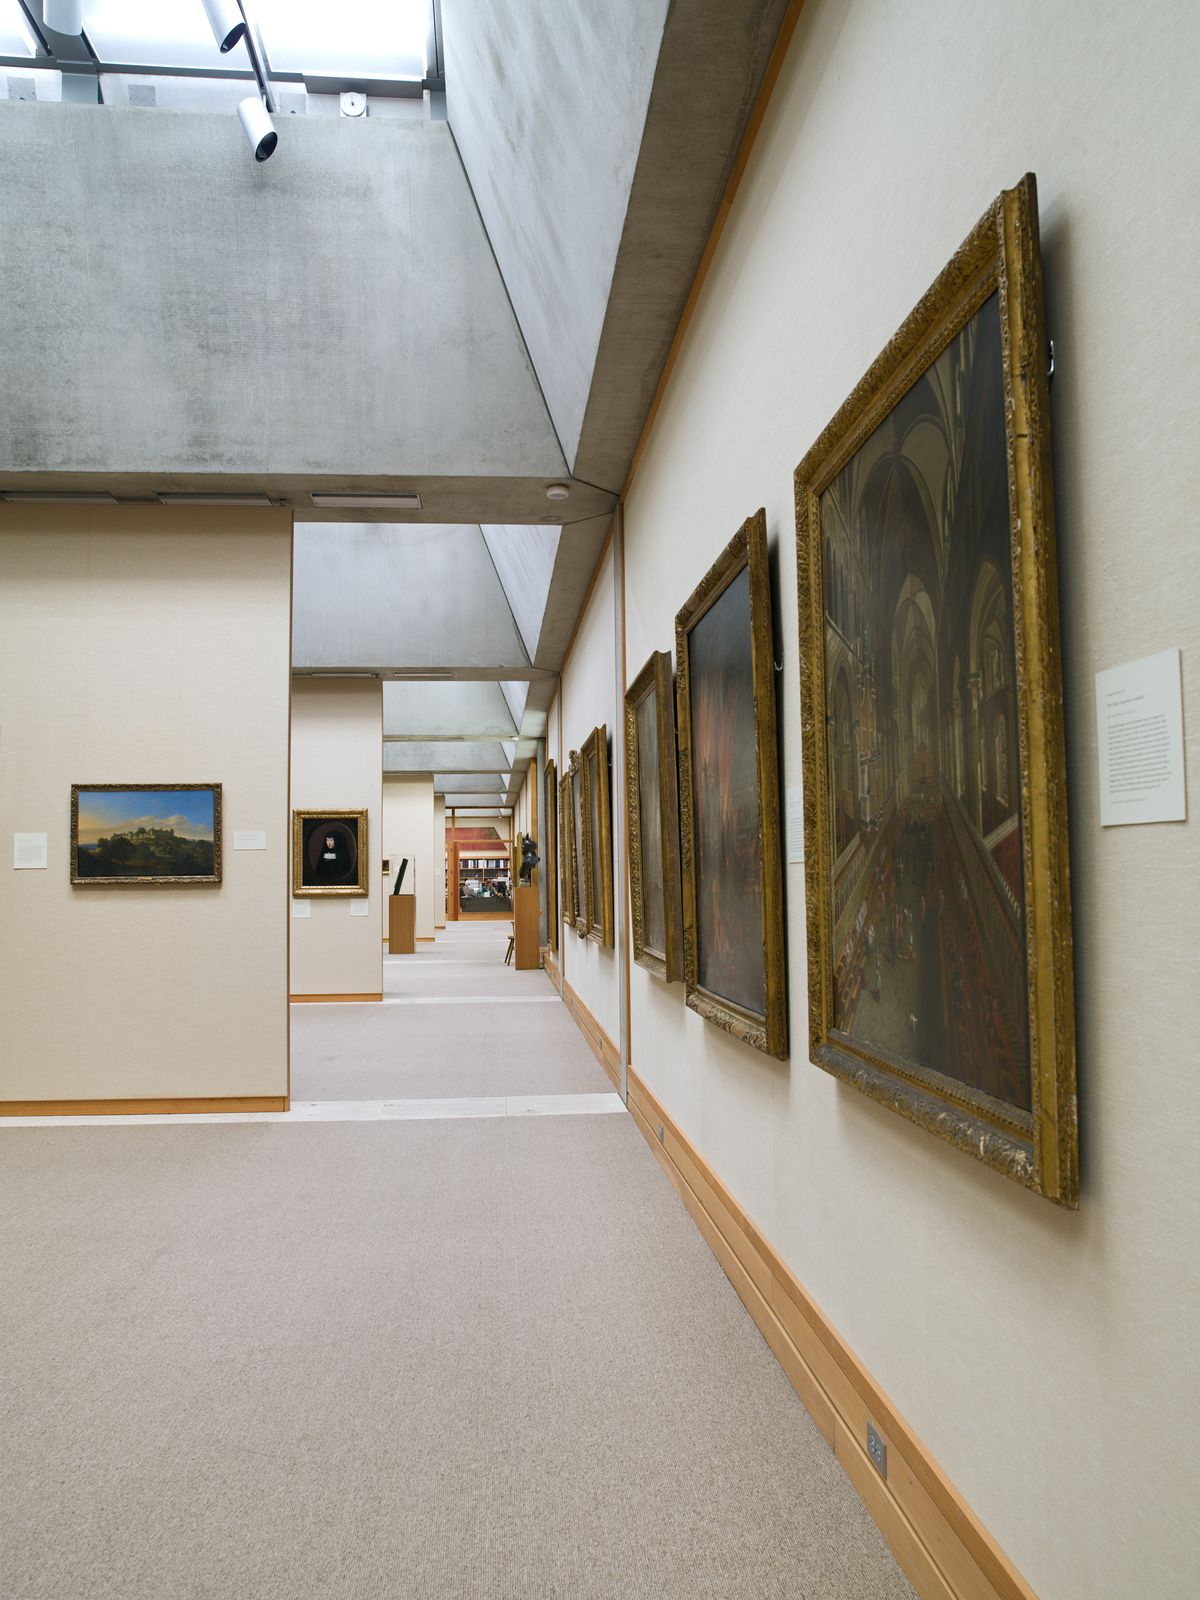 Long Gallery, May 2011, Yale Center for British Art